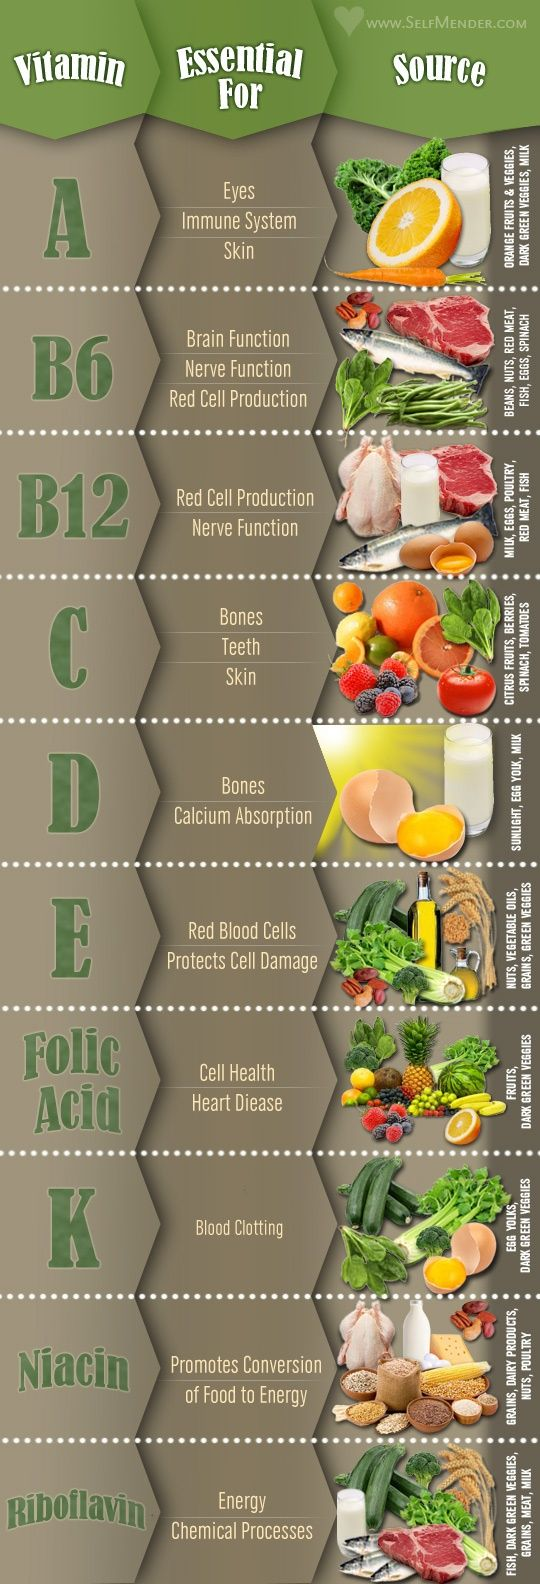 SASA'S NUTRITION TIP OF THE DAY: VITAMIN GUIDE